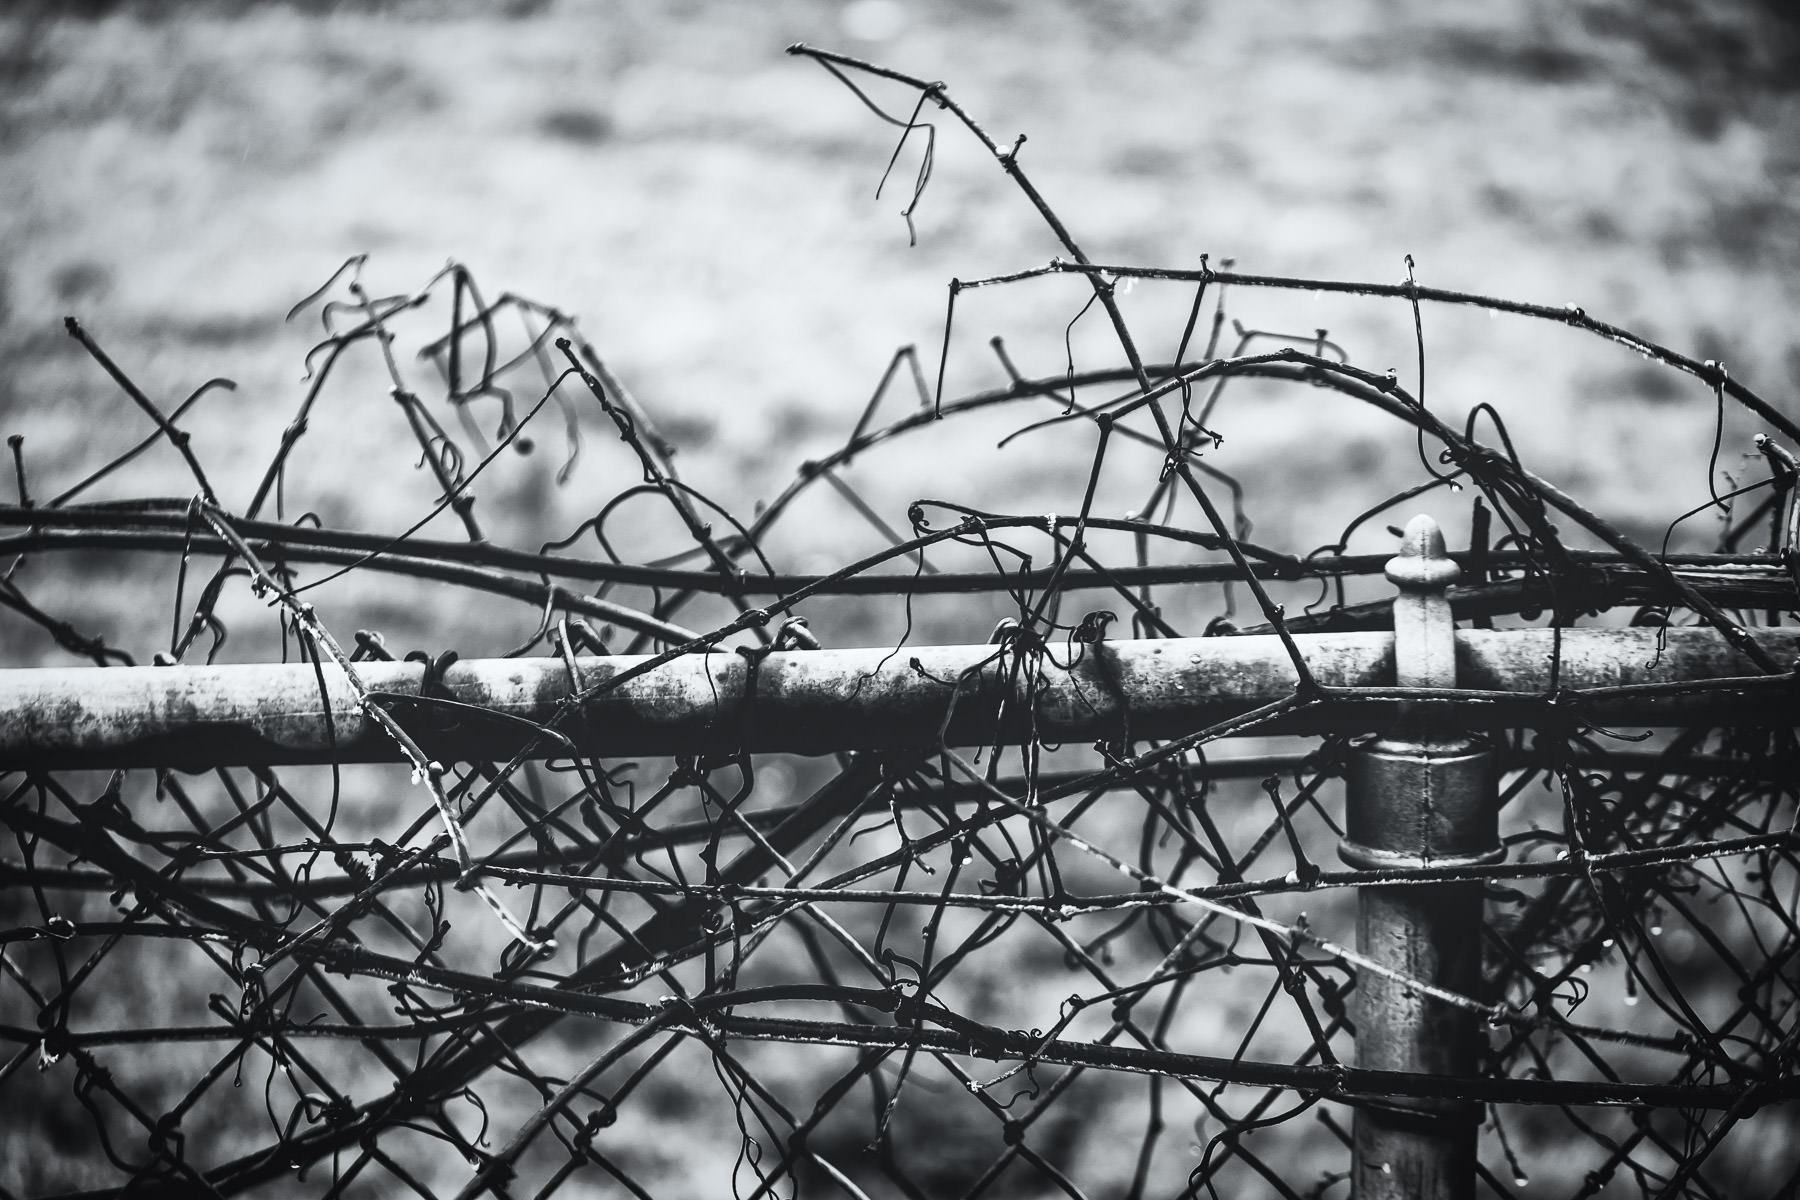 Vines grow on a chain link fence at Minters Chapel Cemetery, DFW Airport, Texas.